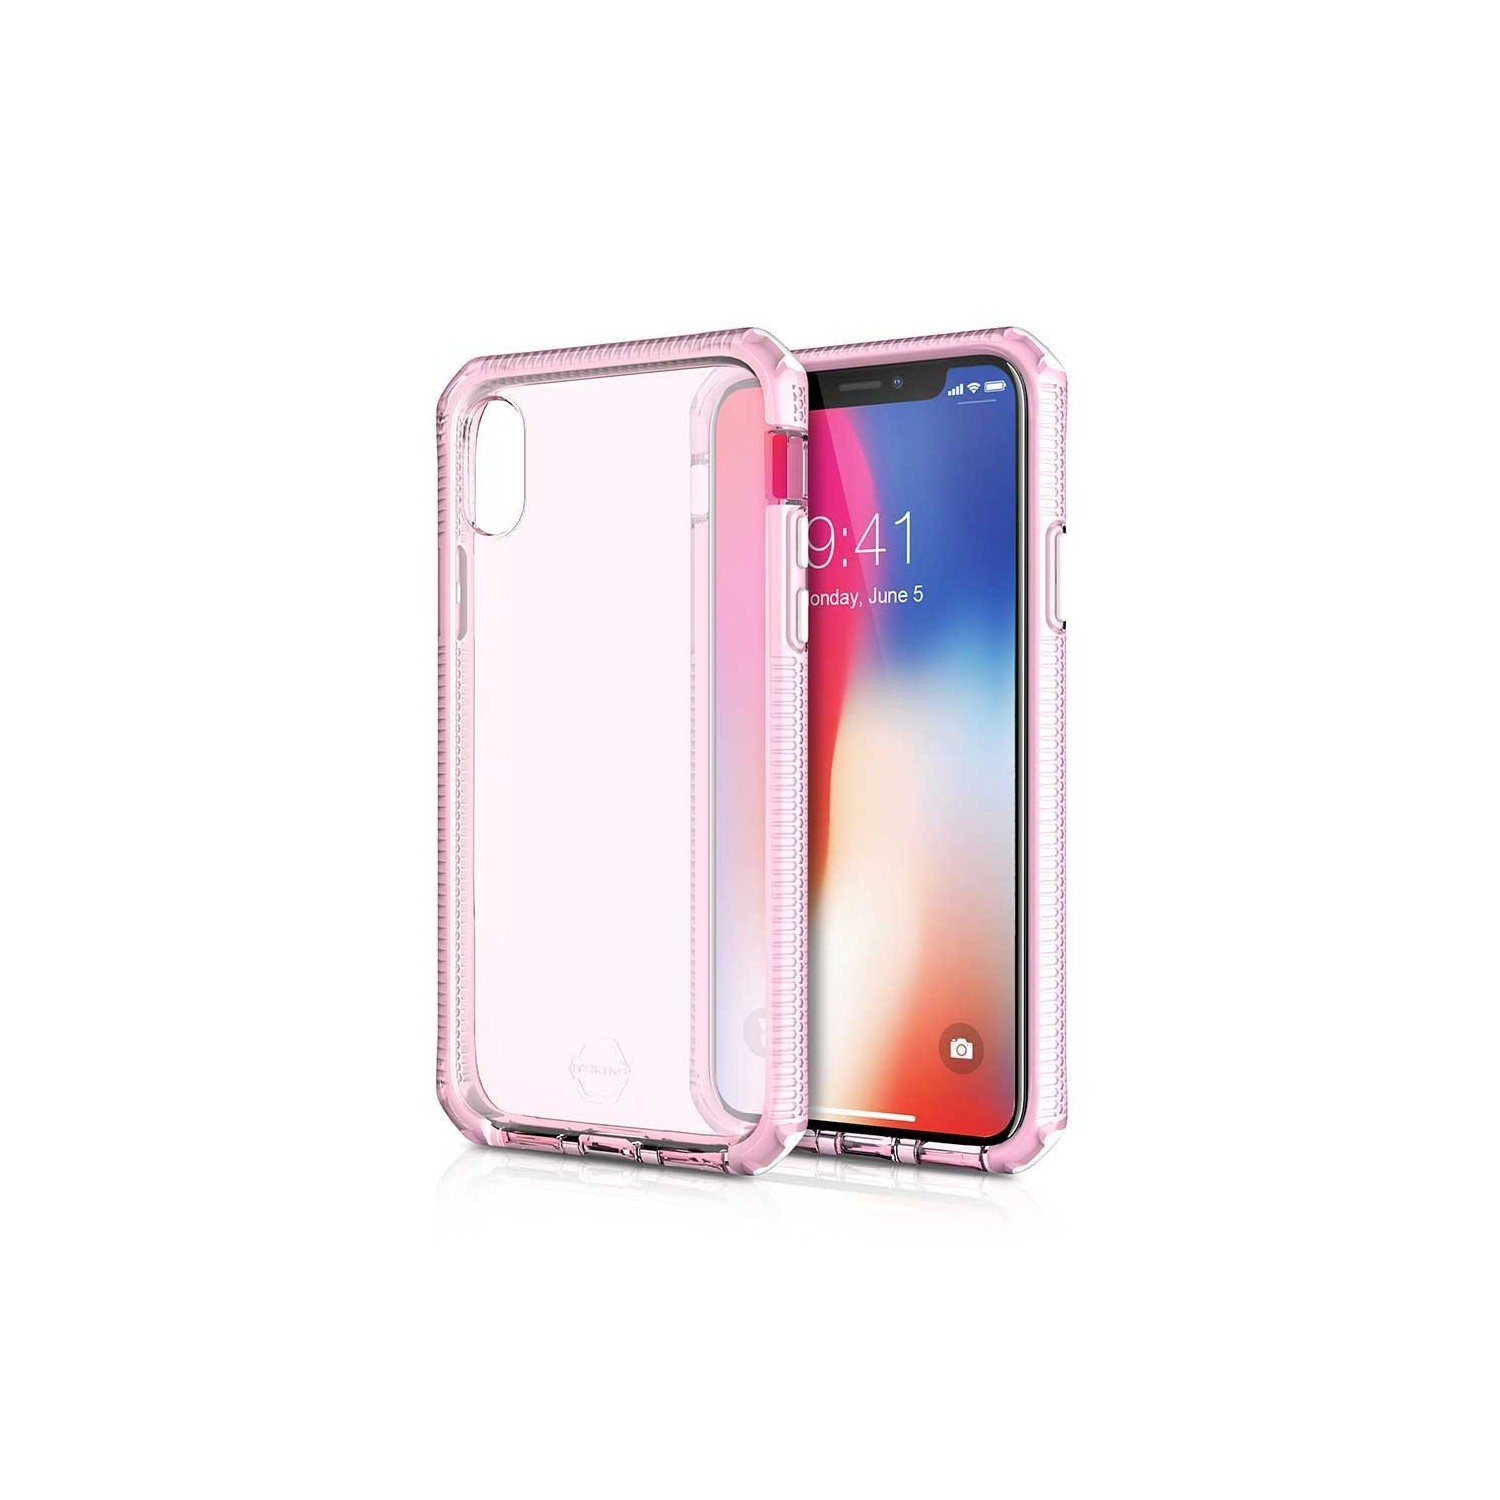 Case - ITSKINS Supreme case for iPhone Xs / X - Trans Pink